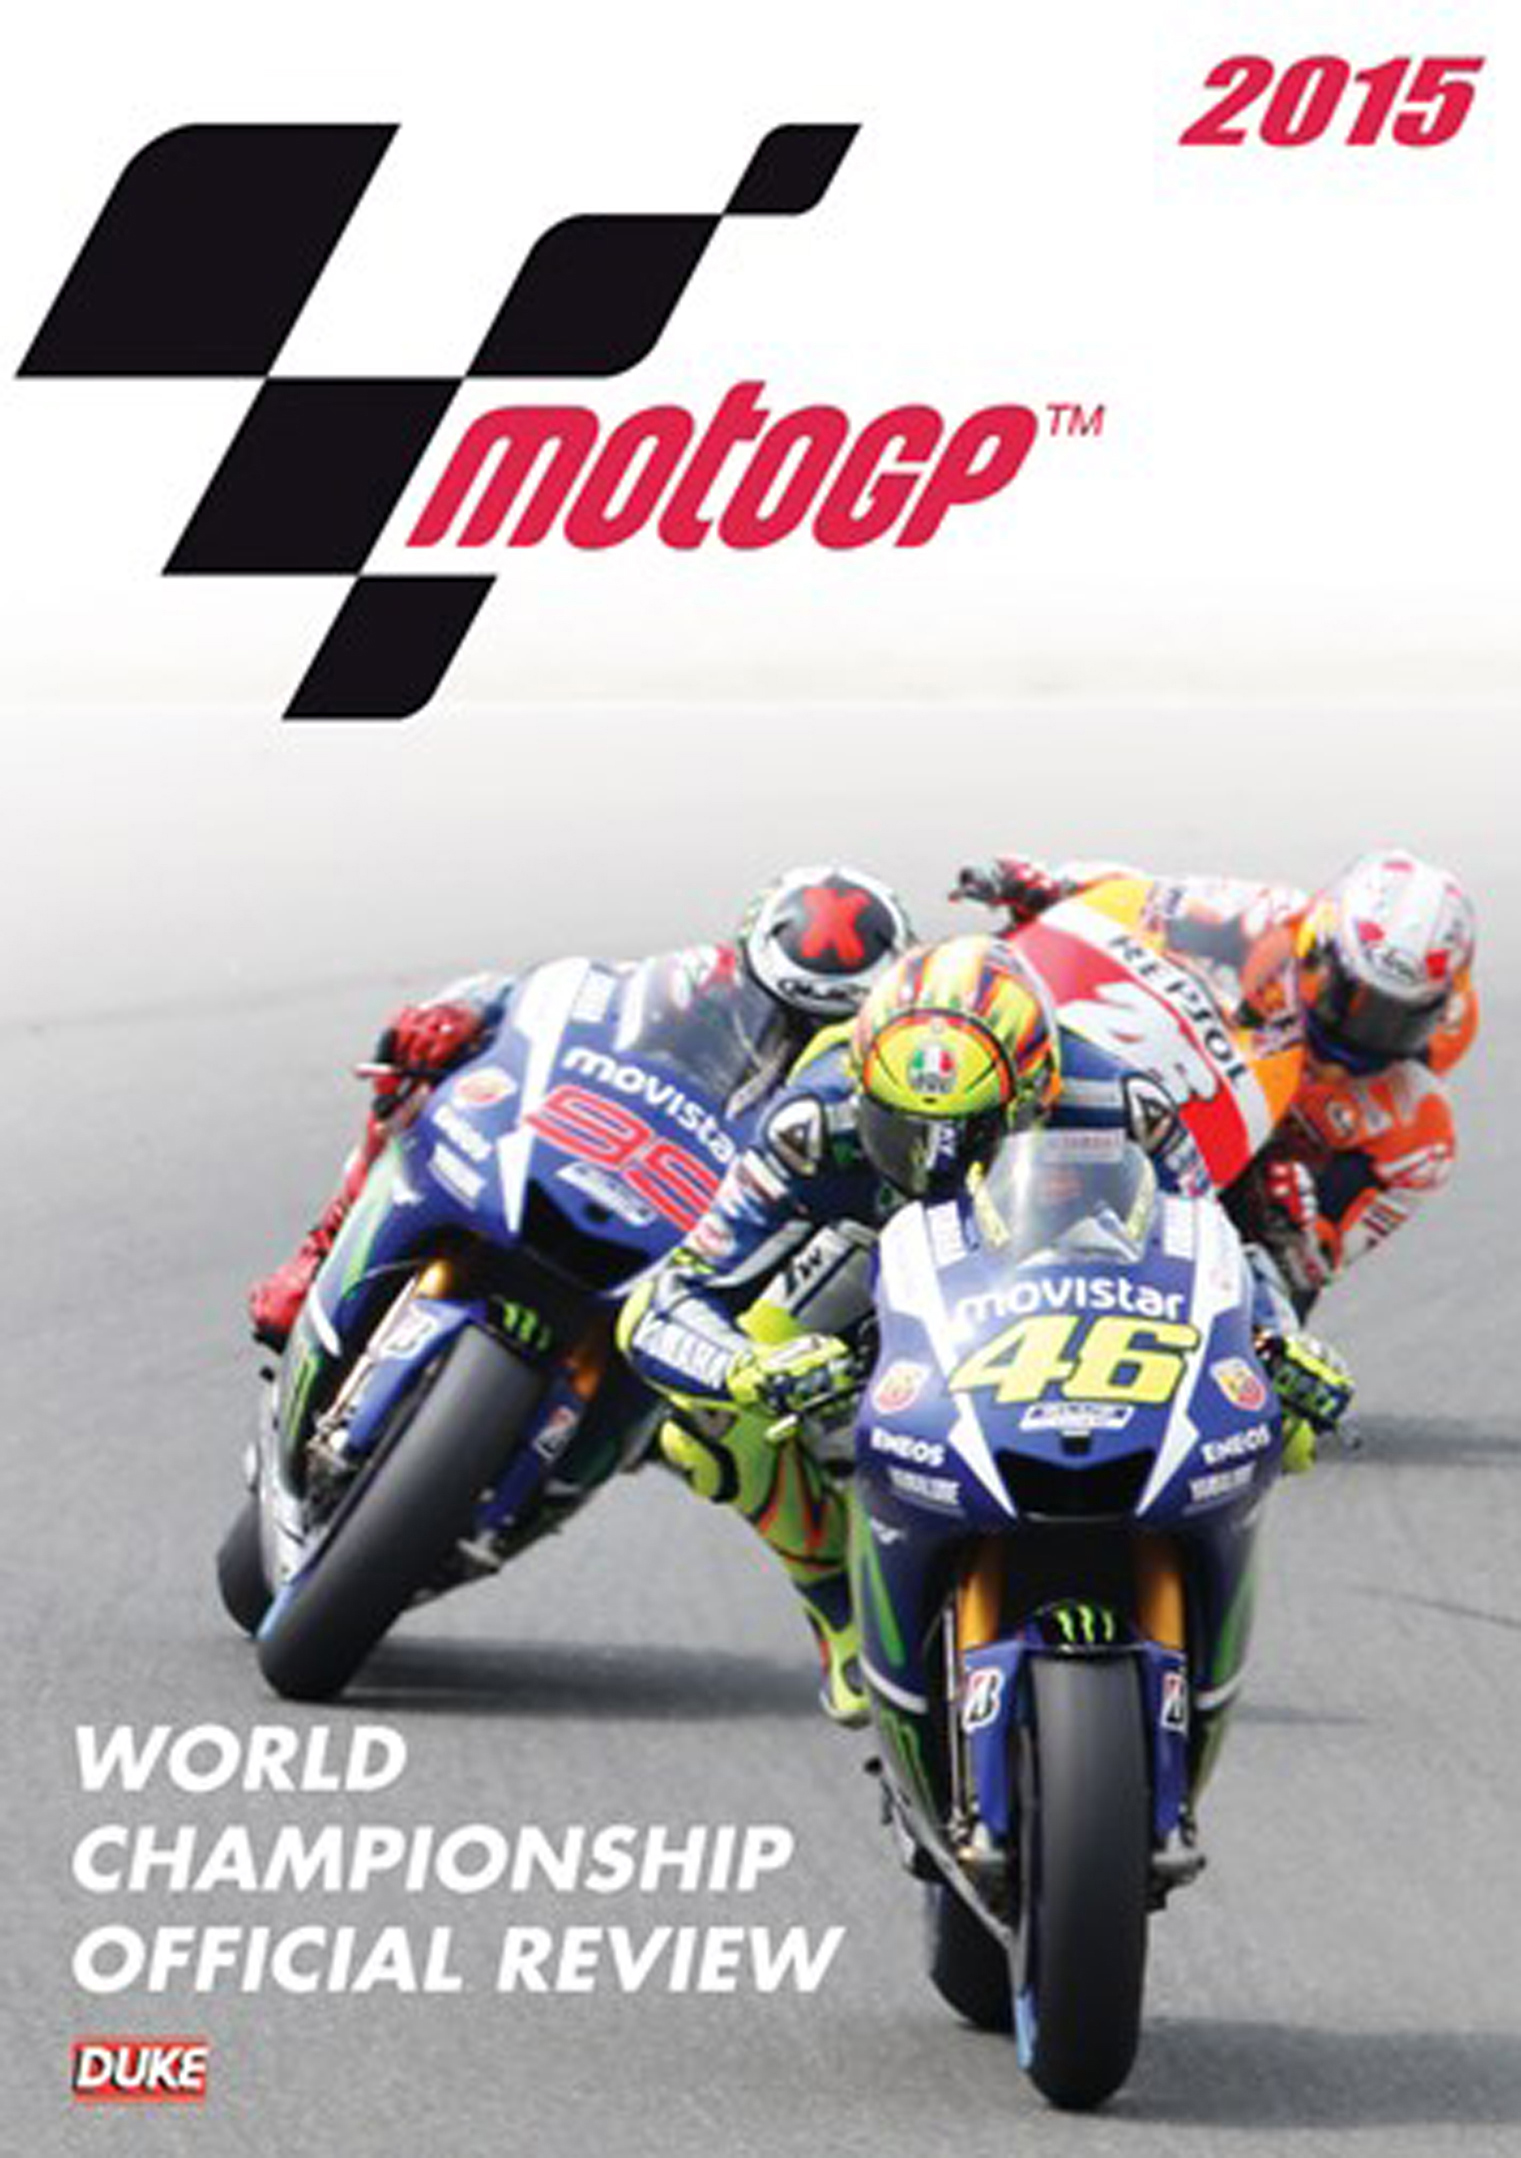 MotoGP: 2015 World Championship Official Review